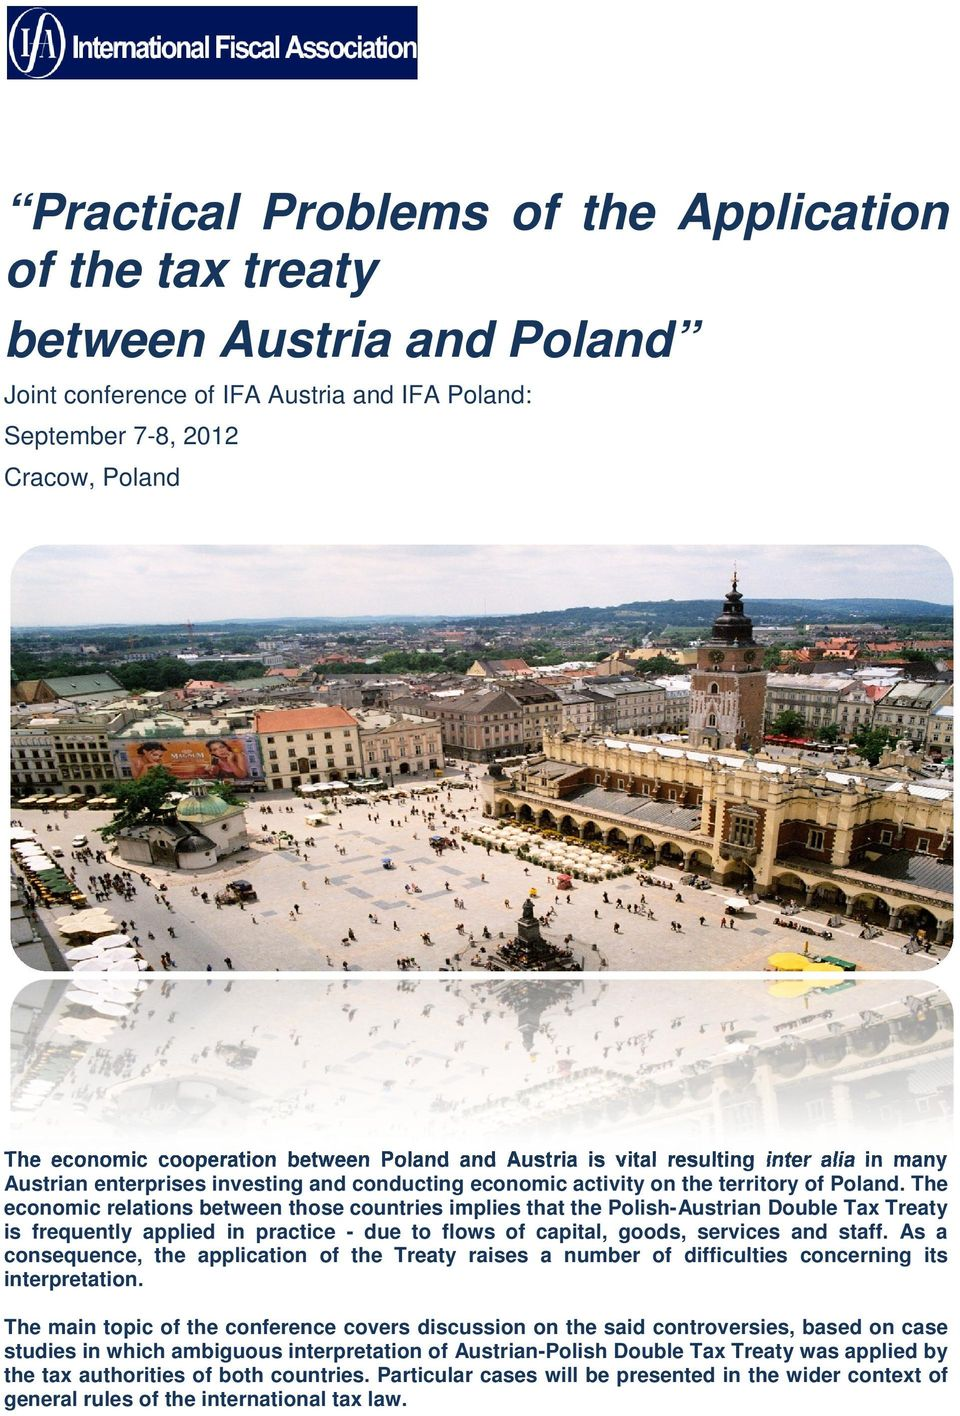 The economic relations between those tho countries implies that the Polish-n n Double Tax Treaty is frequently applied in practice - due to flows of capital, goods, services and staff.